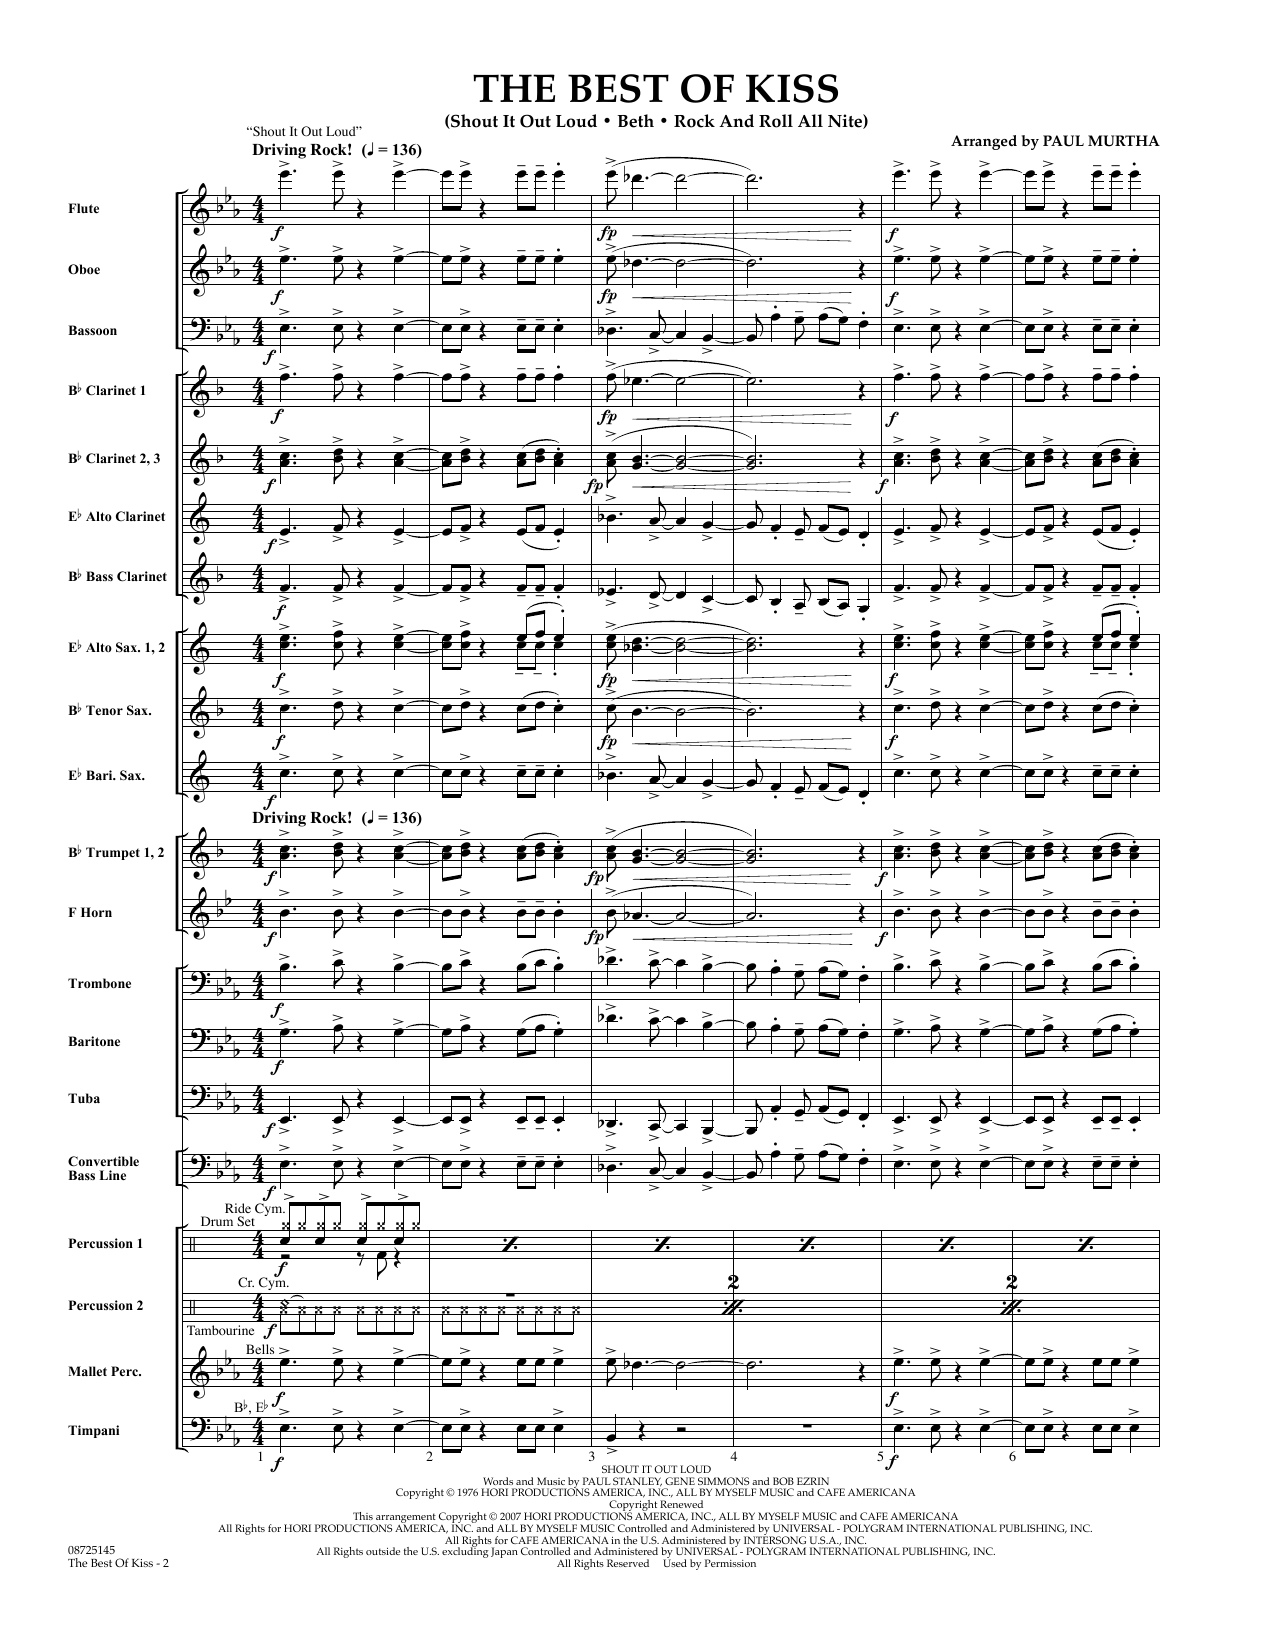 Paul Murtha The Best of Kiss - Full Score sheet music preview music notes and score for Concert Band including 19 page(s)